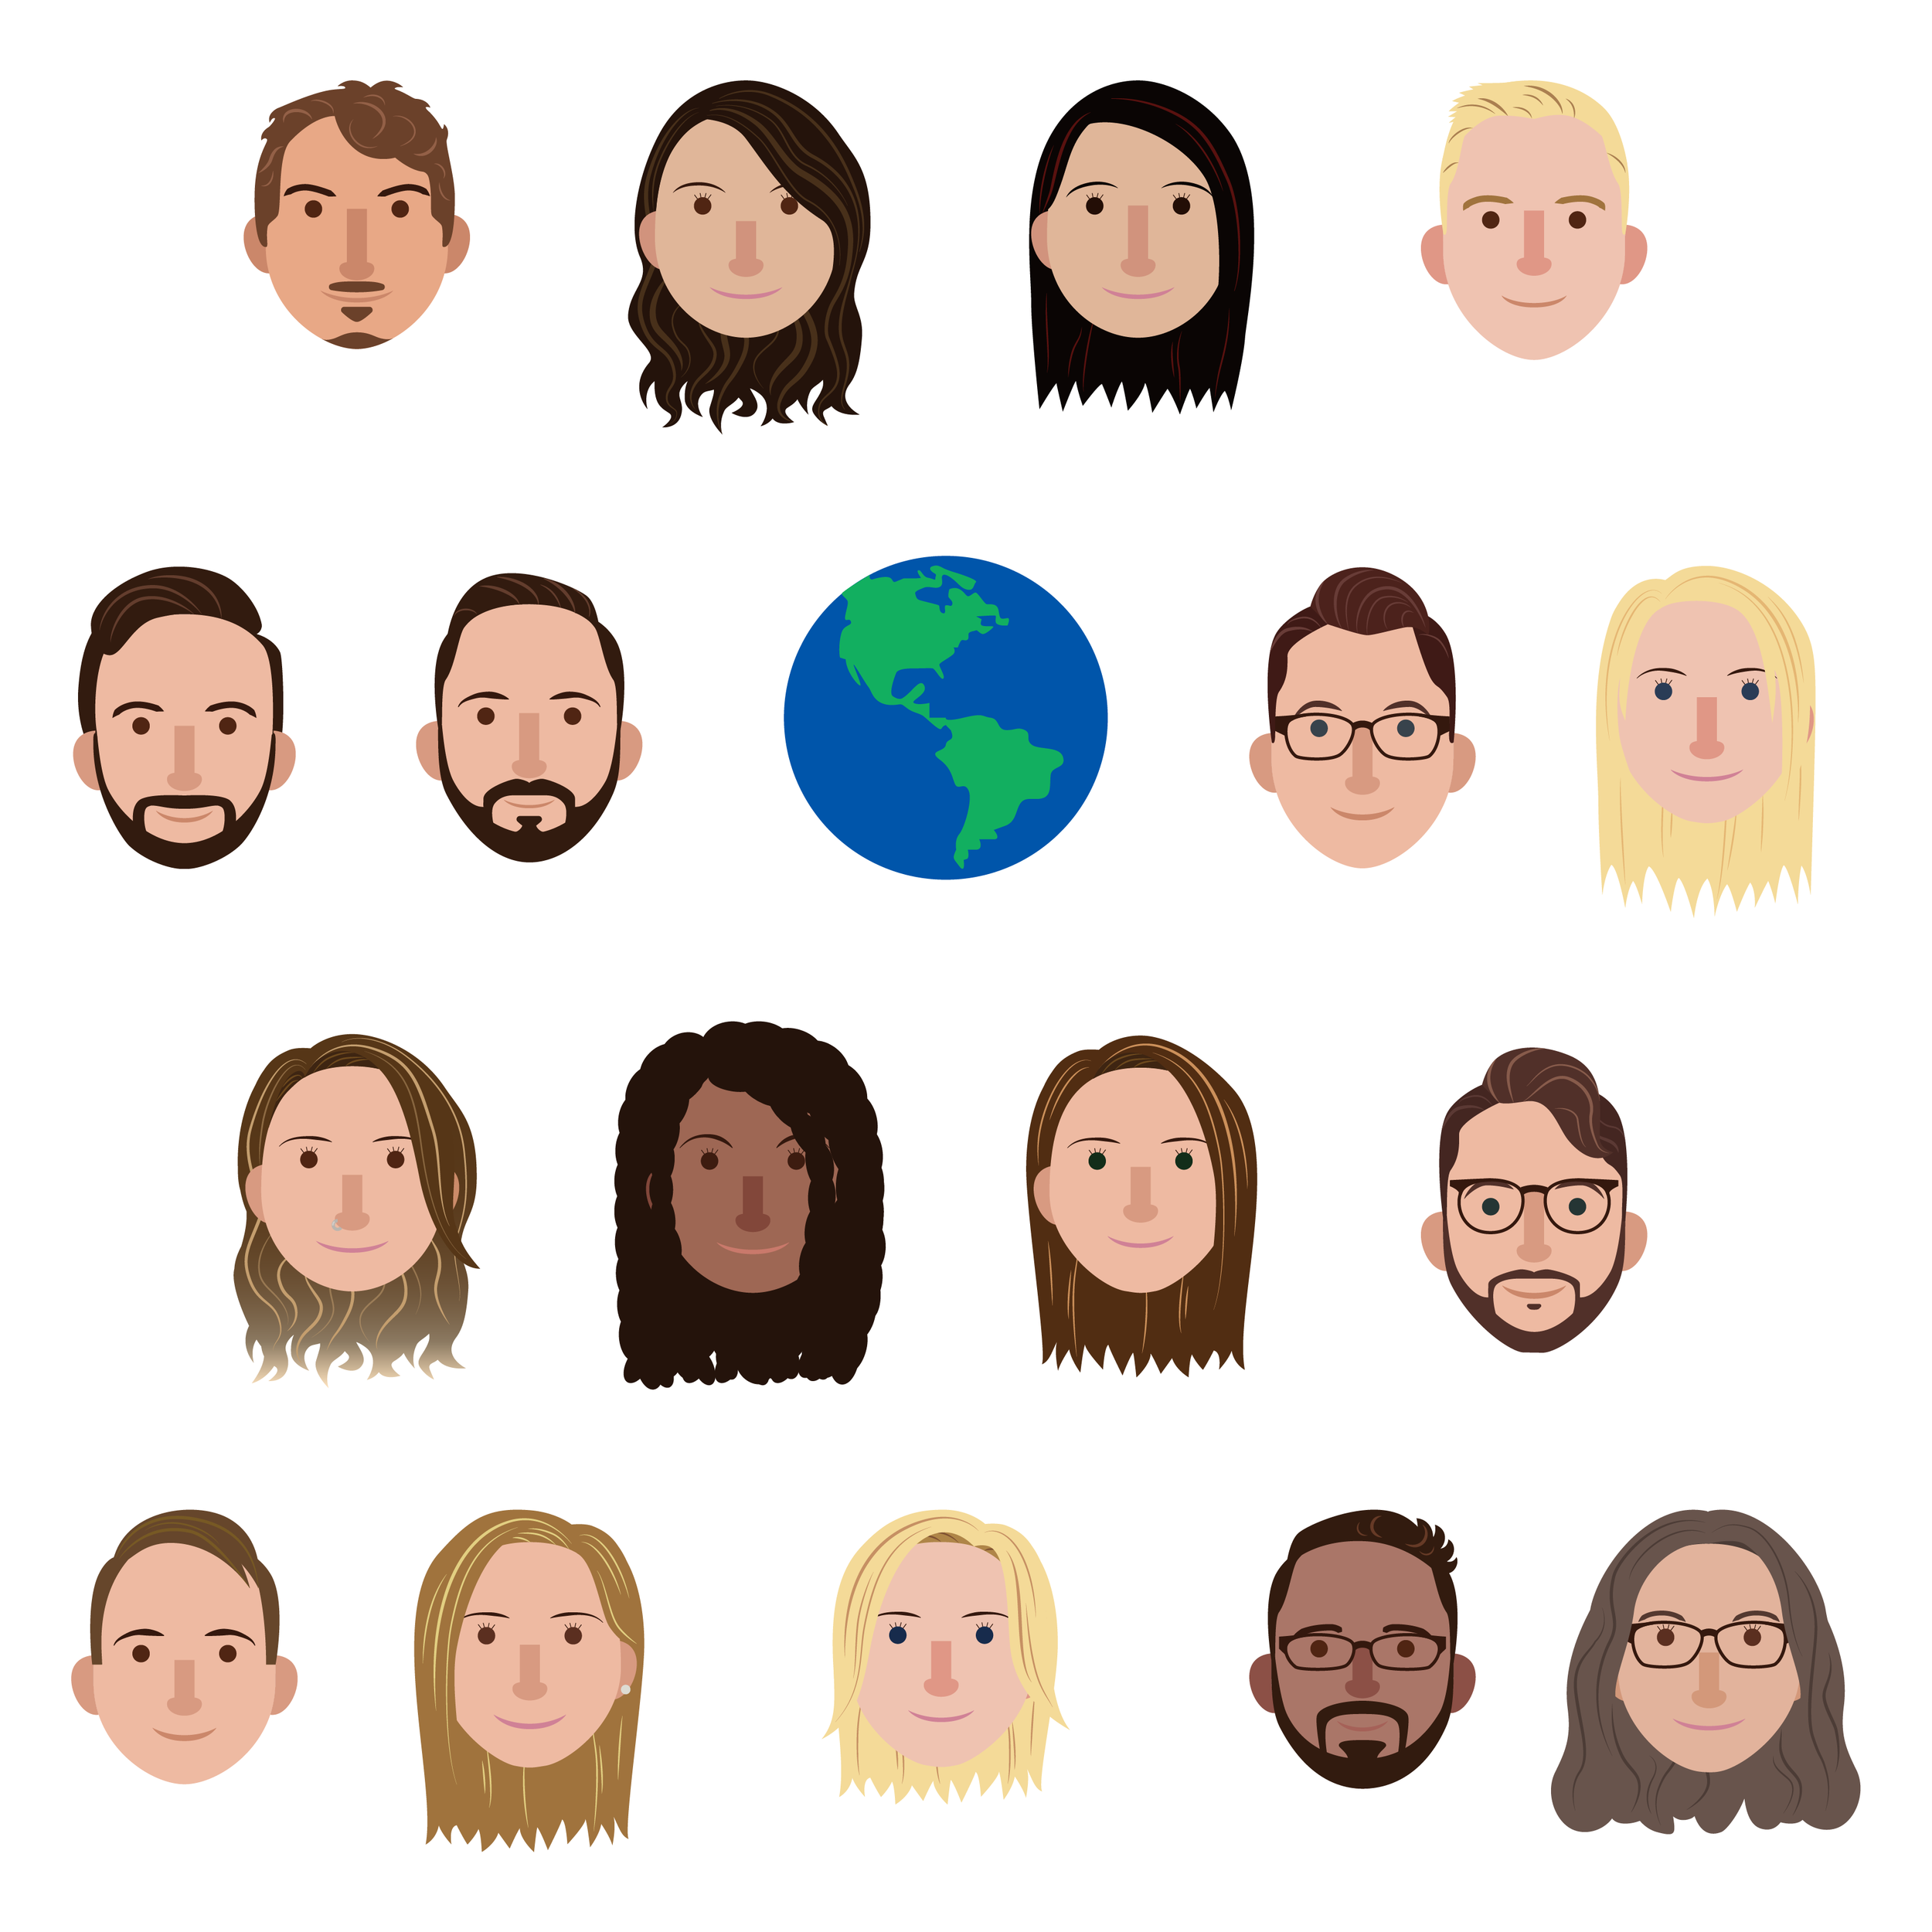 Earth_Day_emojis-11.png